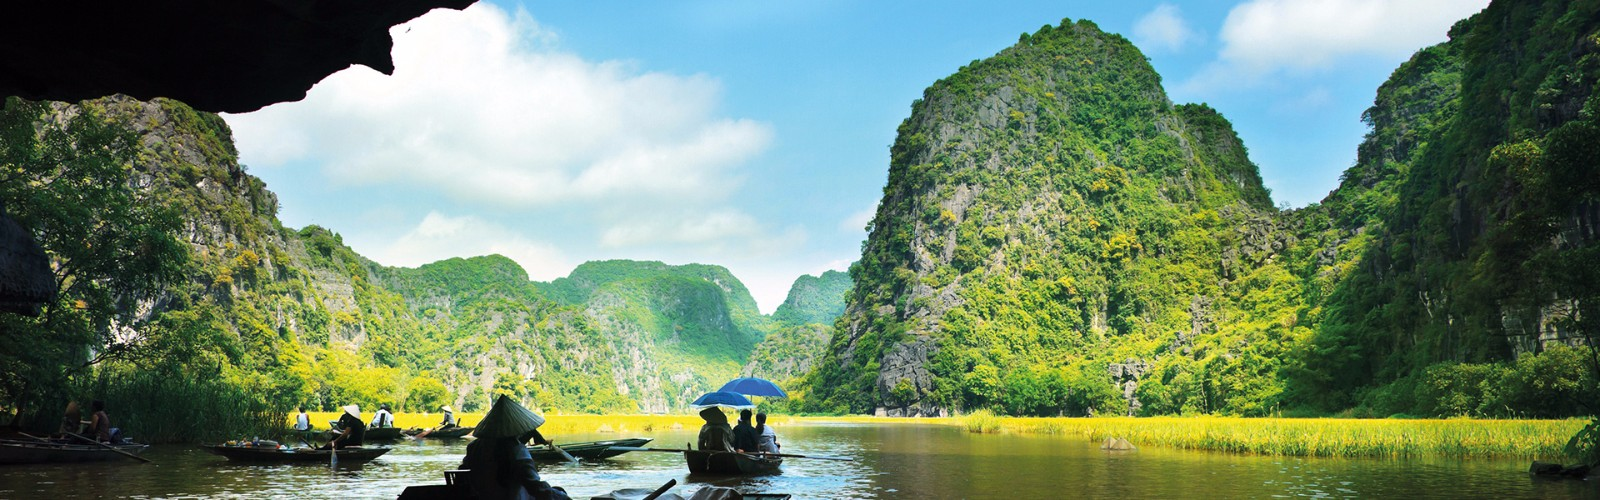 Halong Bay Amp Red River Vietnam Private Tour Wendy Wu Tours